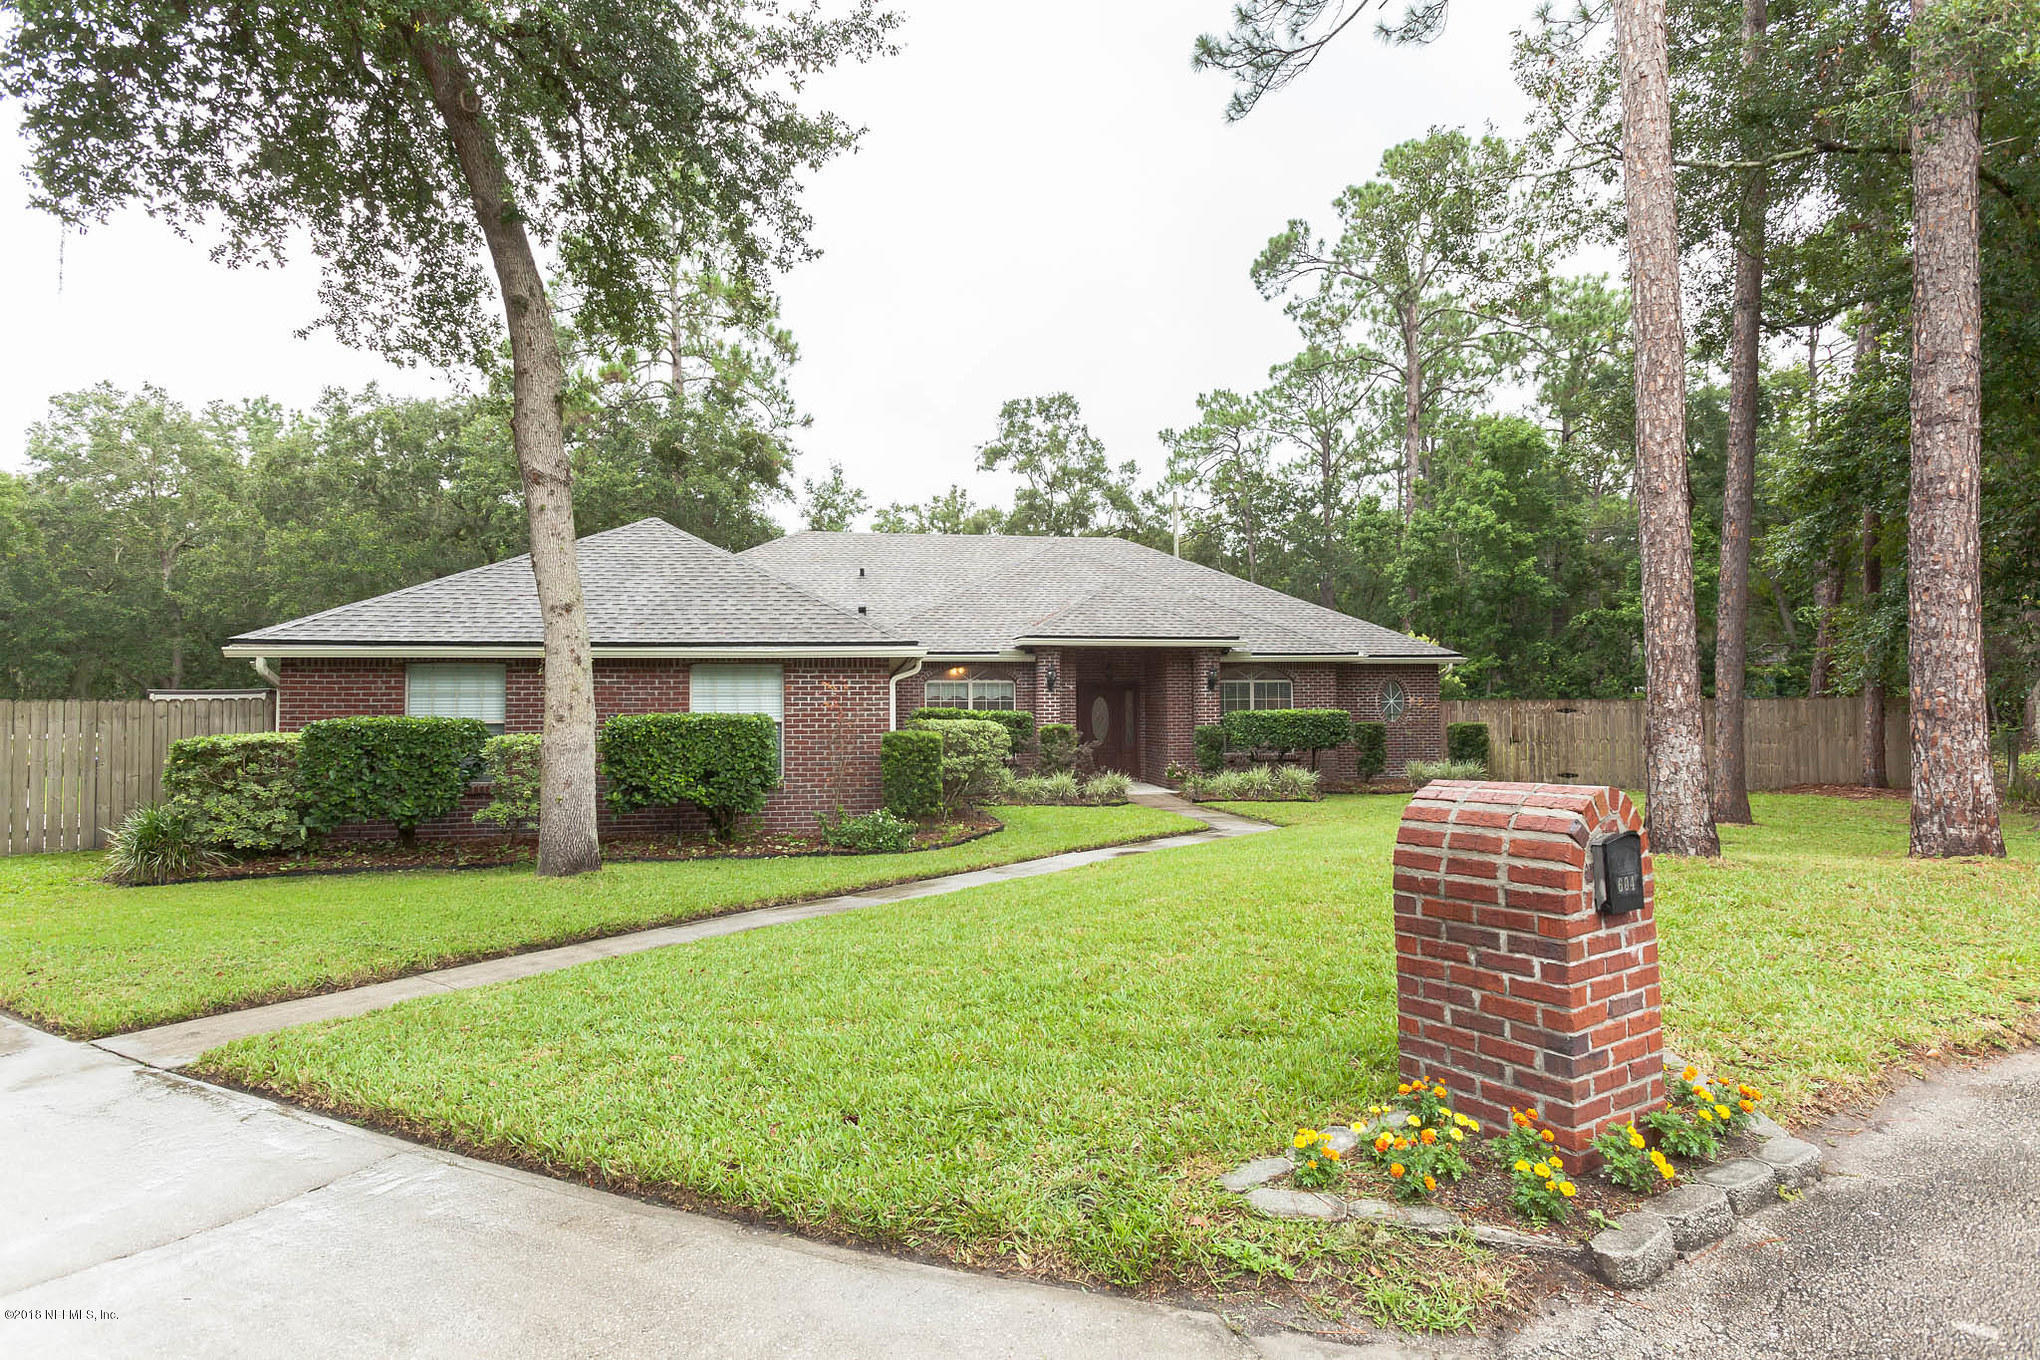 604 IRENE, JACKSONVILLE, FLORIDA 32259, 4 Bedrooms Bedrooms, ,3 BathroomsBathrooms,Residential - single family,For sale,IRENE,948643